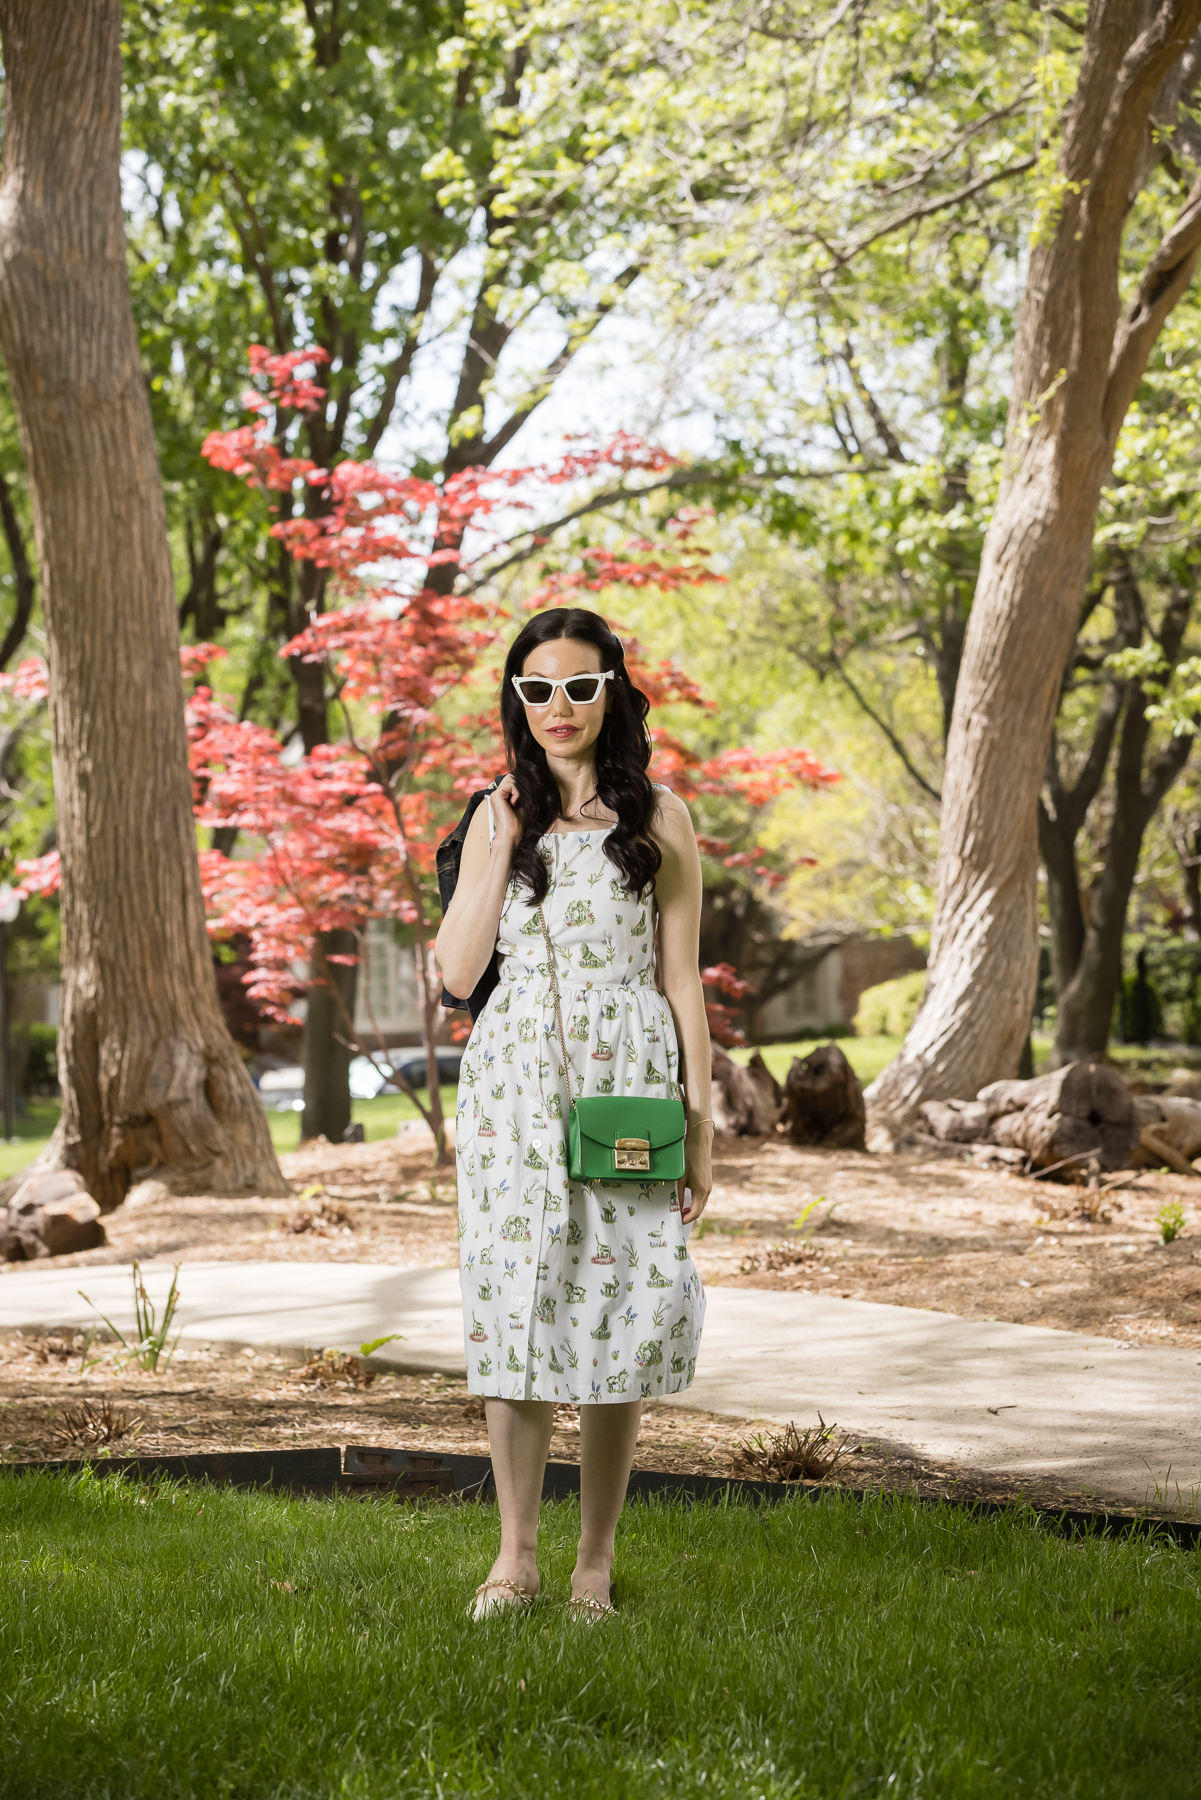 Lisa Valerie Morgan from Pretty Little Shoppers Blog wears Sarah Patrick Collection Newport Topiary Gardens Dress with Green Furla Crossbody Bag